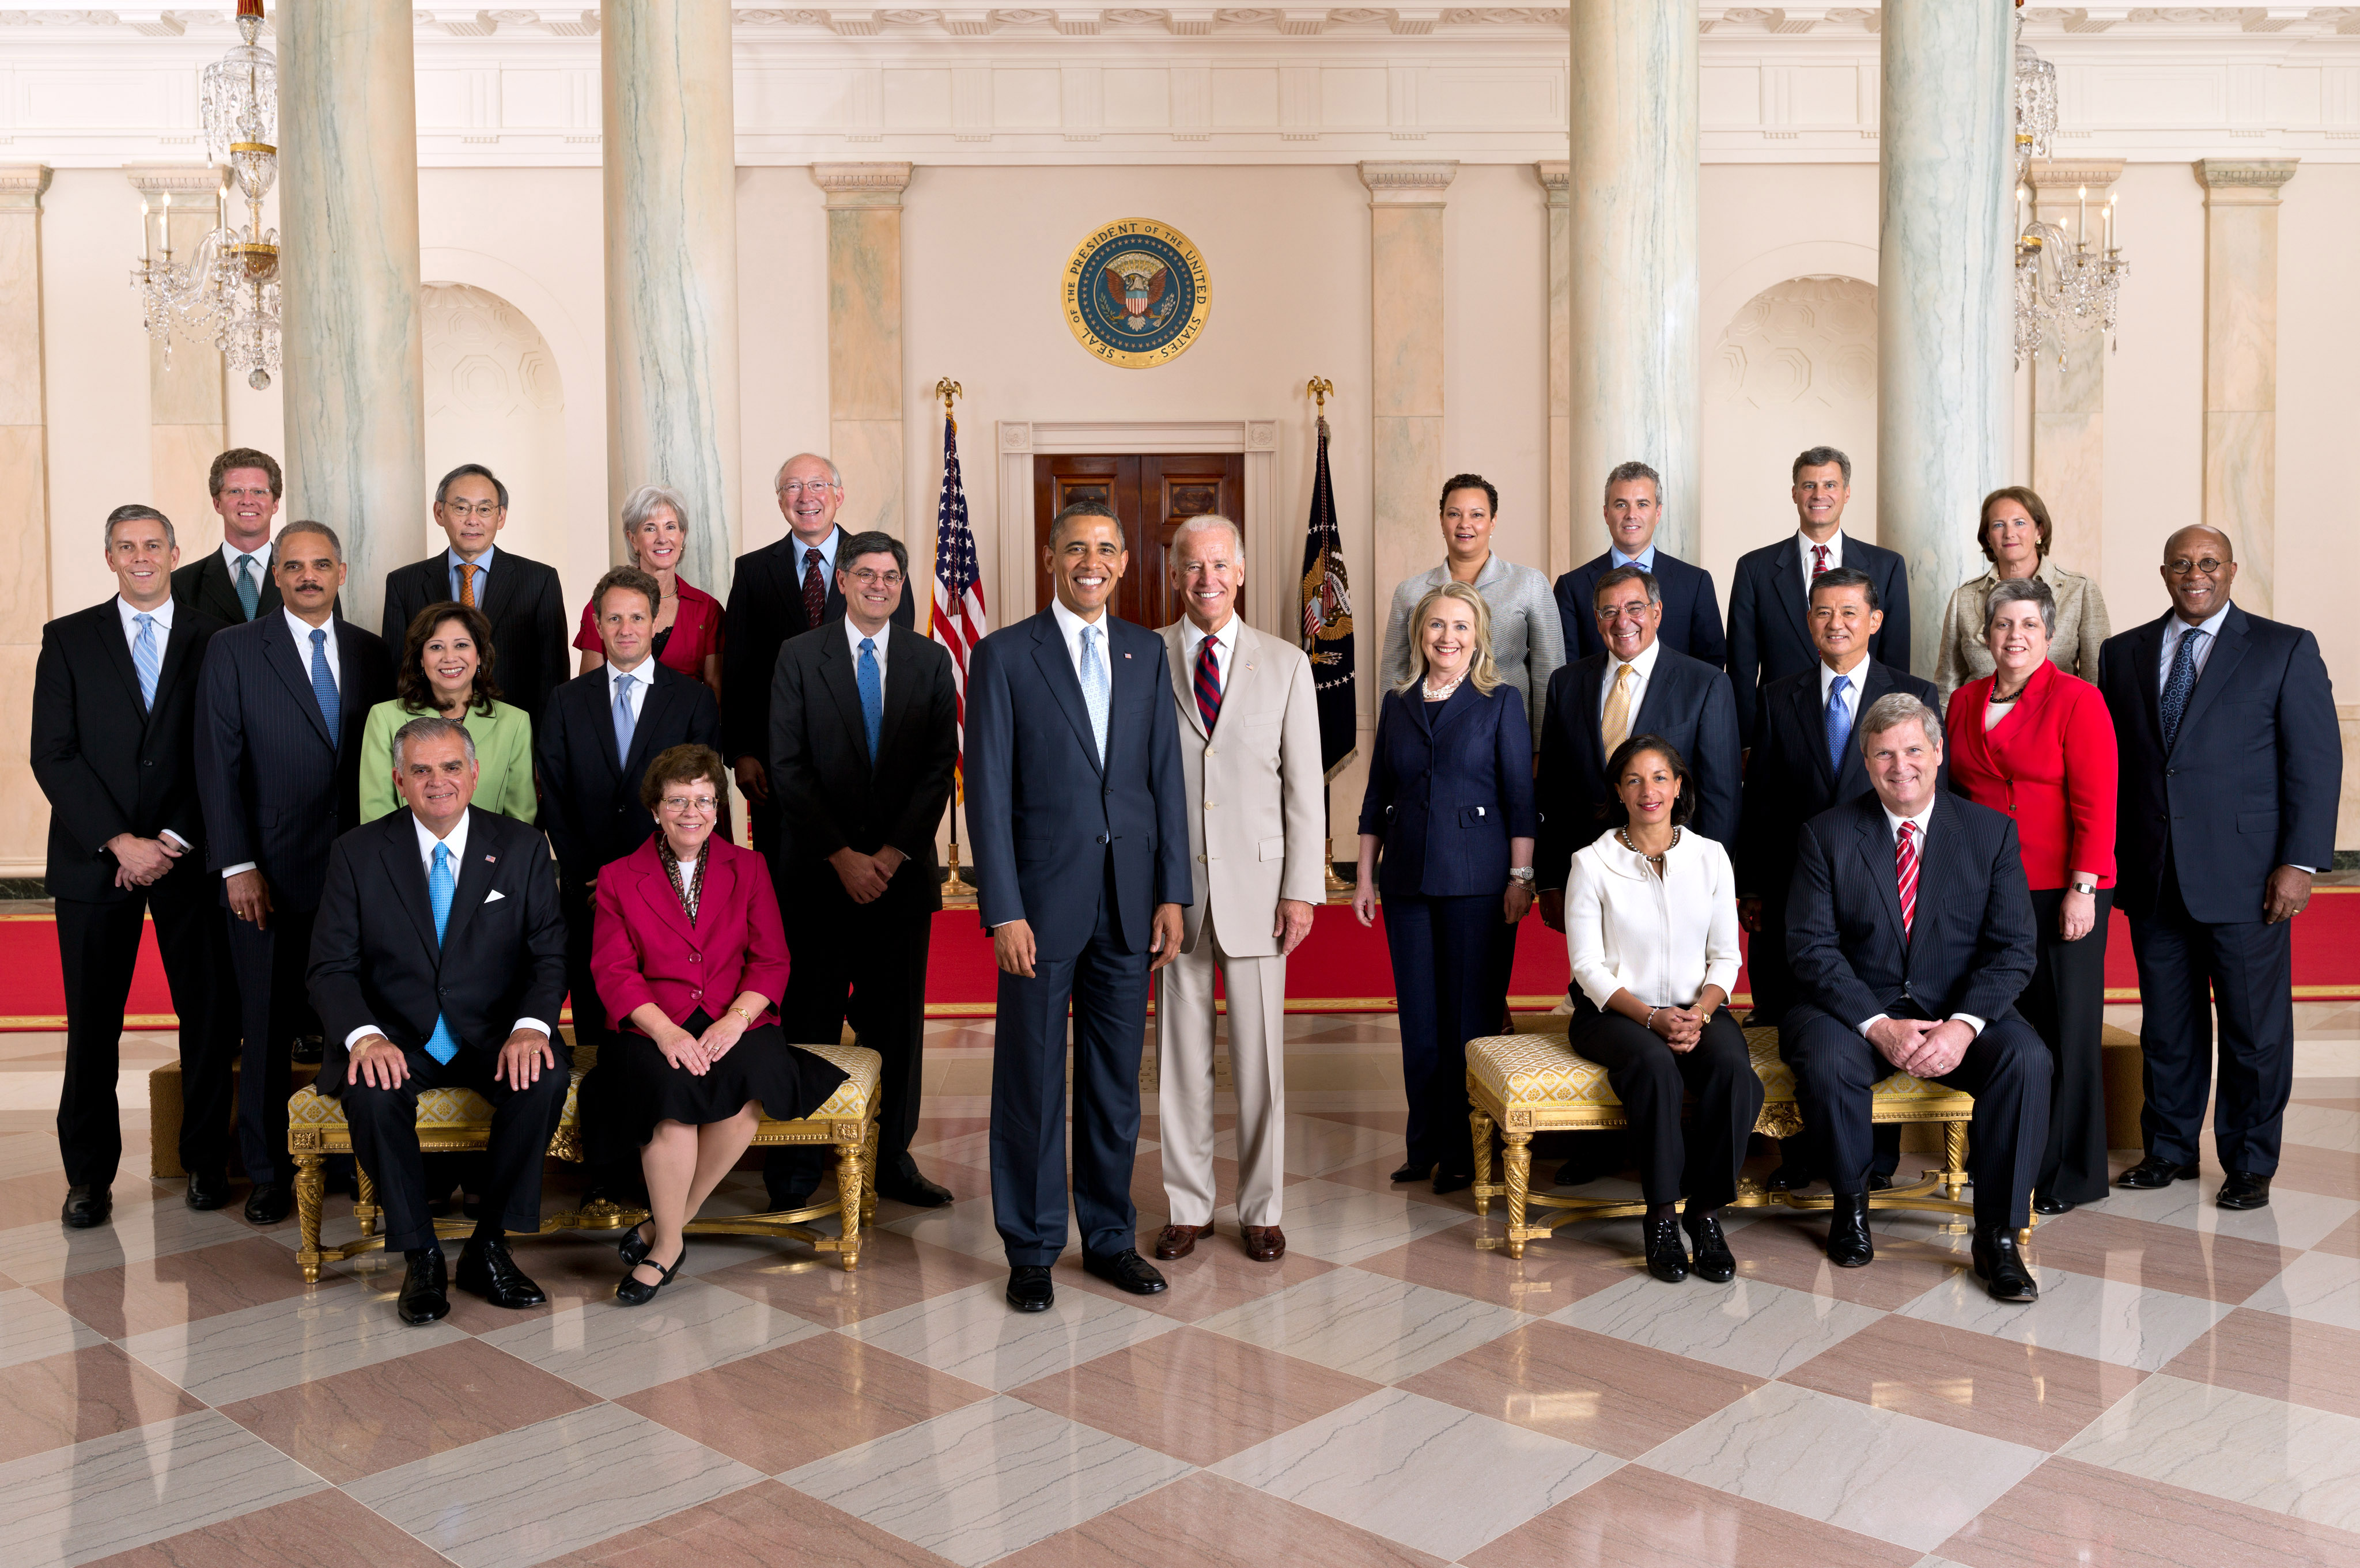 President Obama with his Cabinet